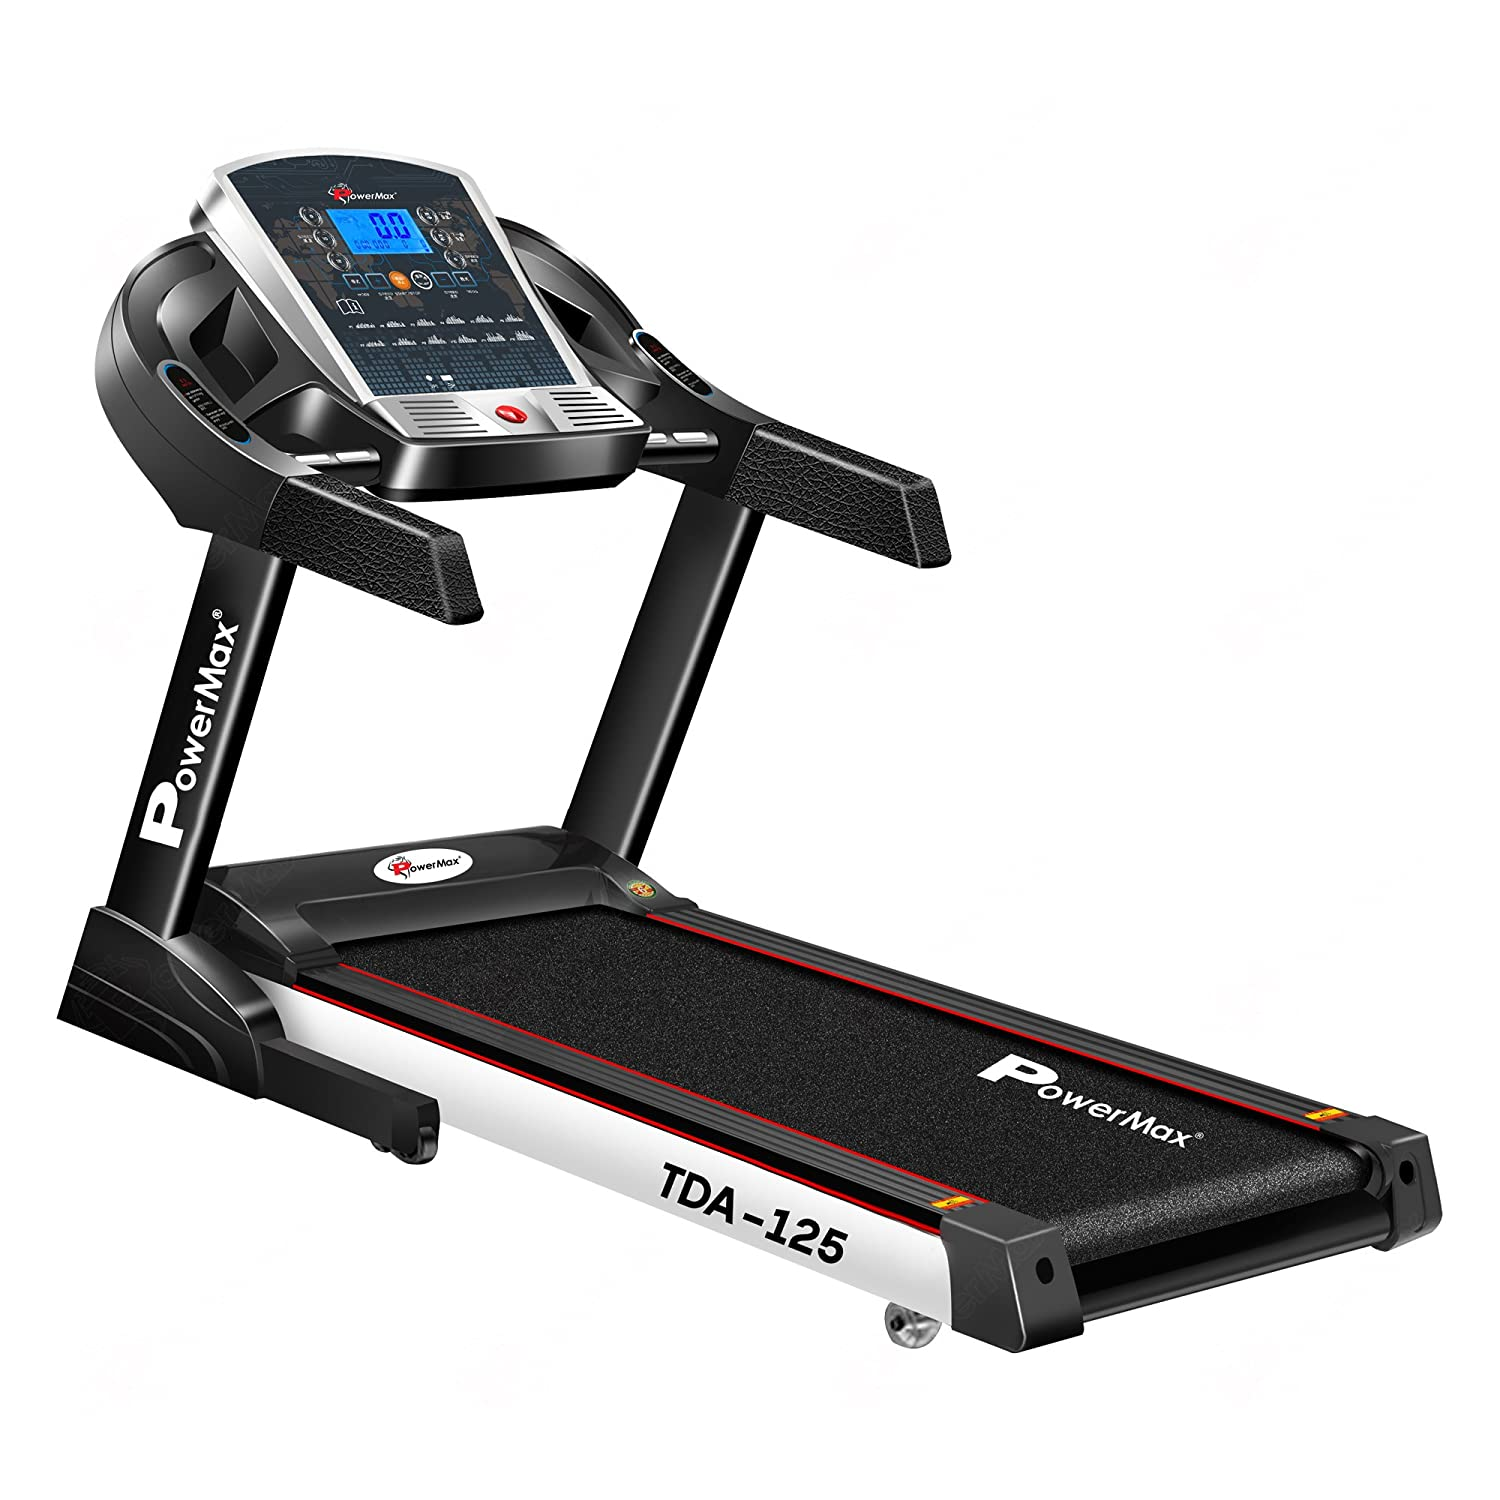 Powermax Fitness TDA-125 (2.0 HP), Smart Run Function, Auto